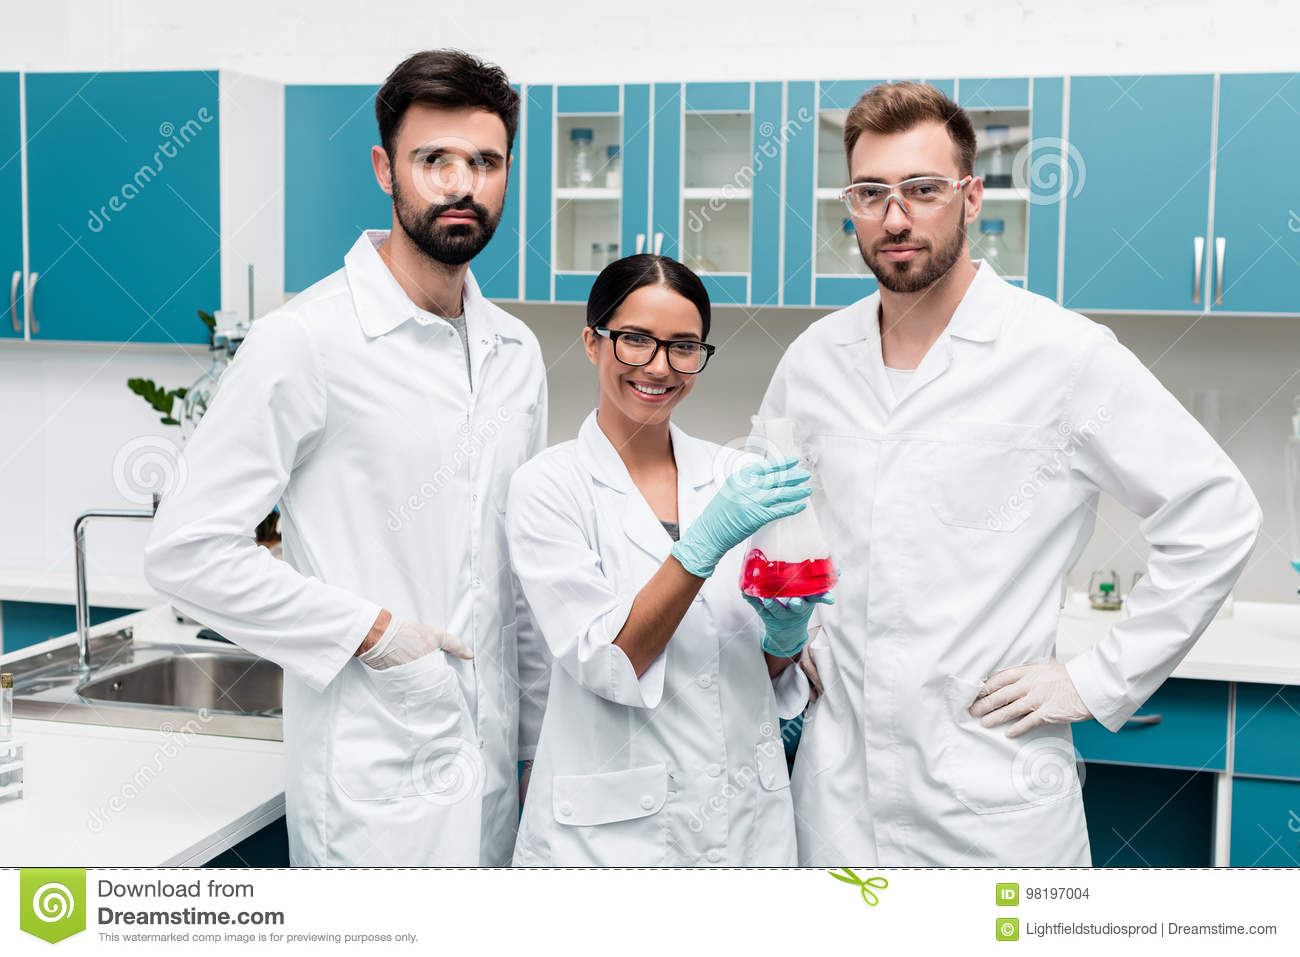 Young scientists in white coats holding flask with reagent and smiling at camera in chemical lab